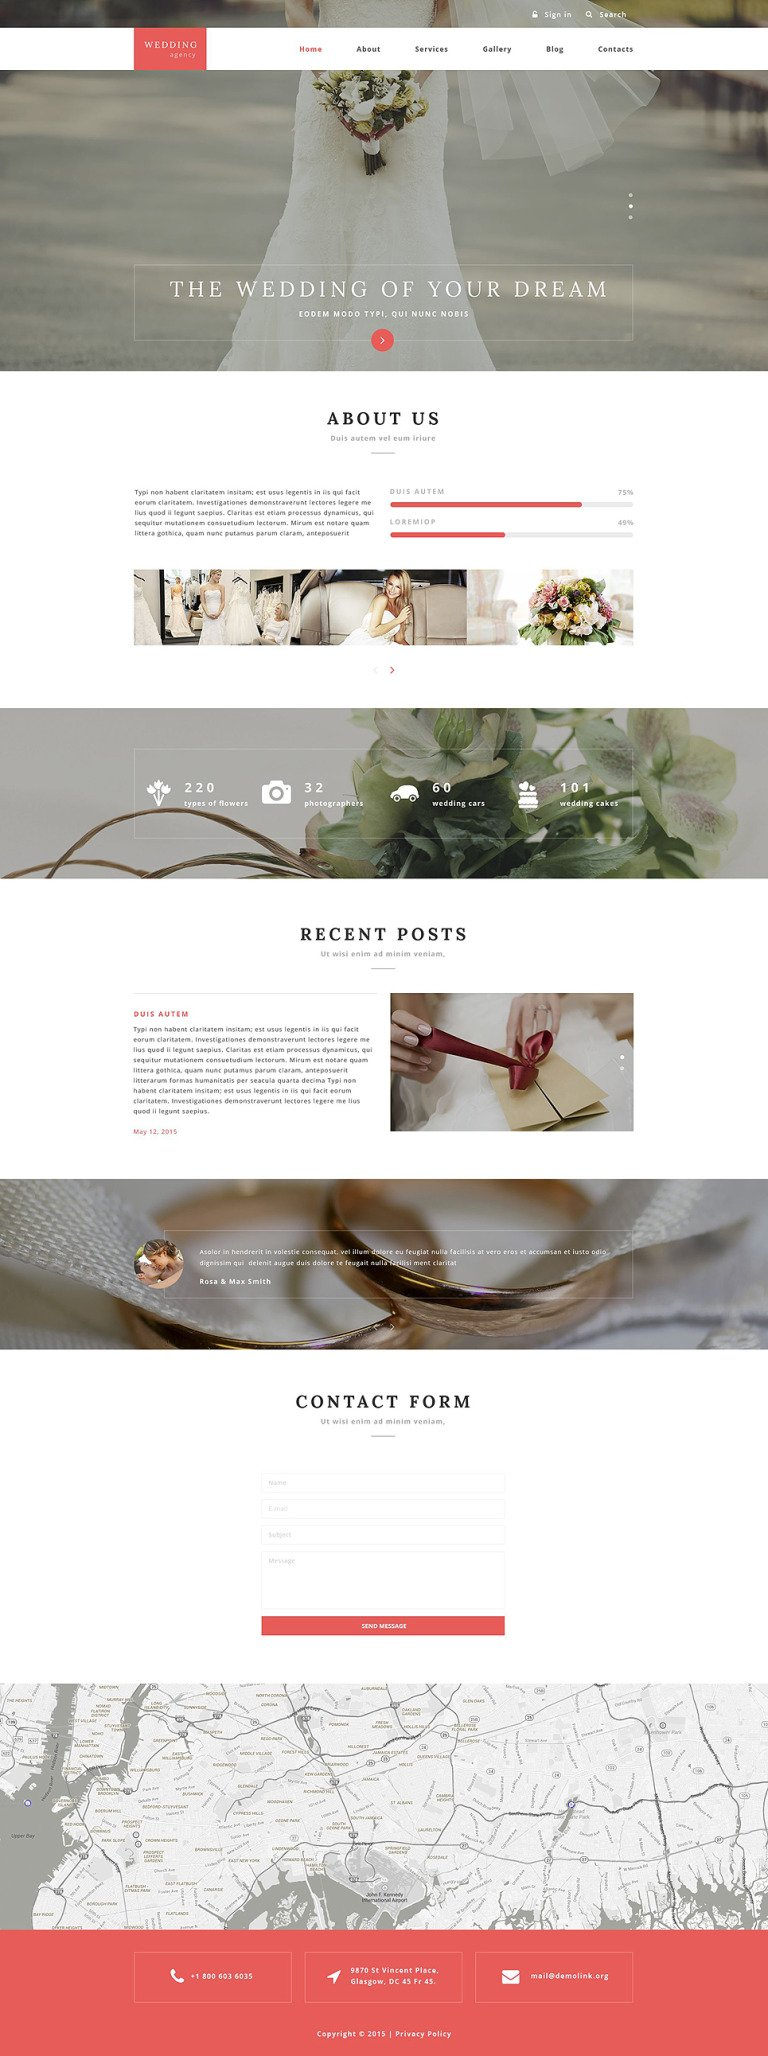 Wedding Agency Drupal Template New Screenshots BIG